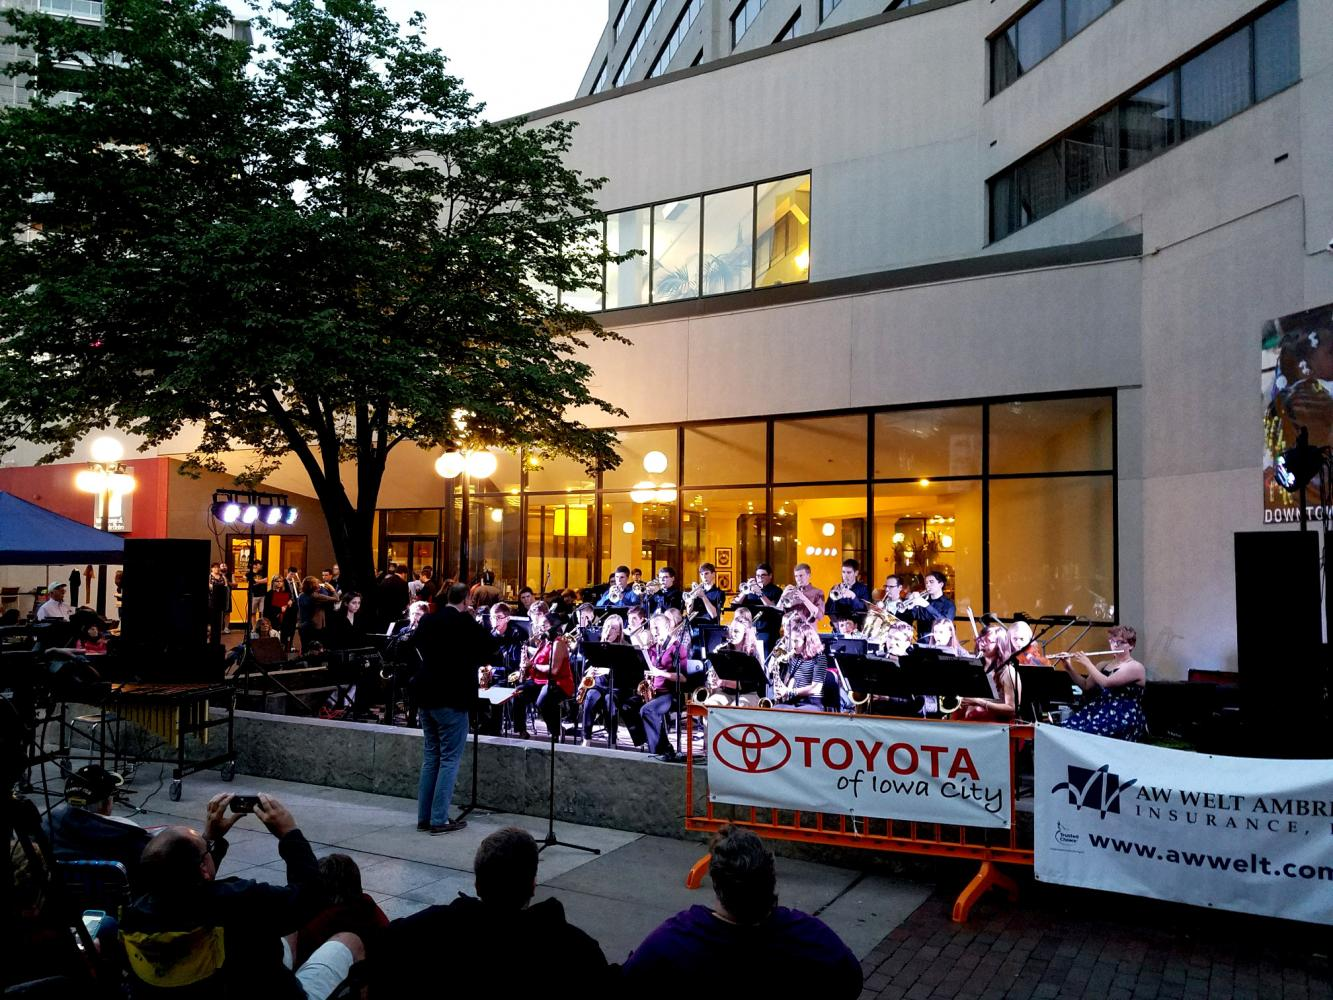 Ryan Arp conducts the jazz bands Friday night on the Pedmall